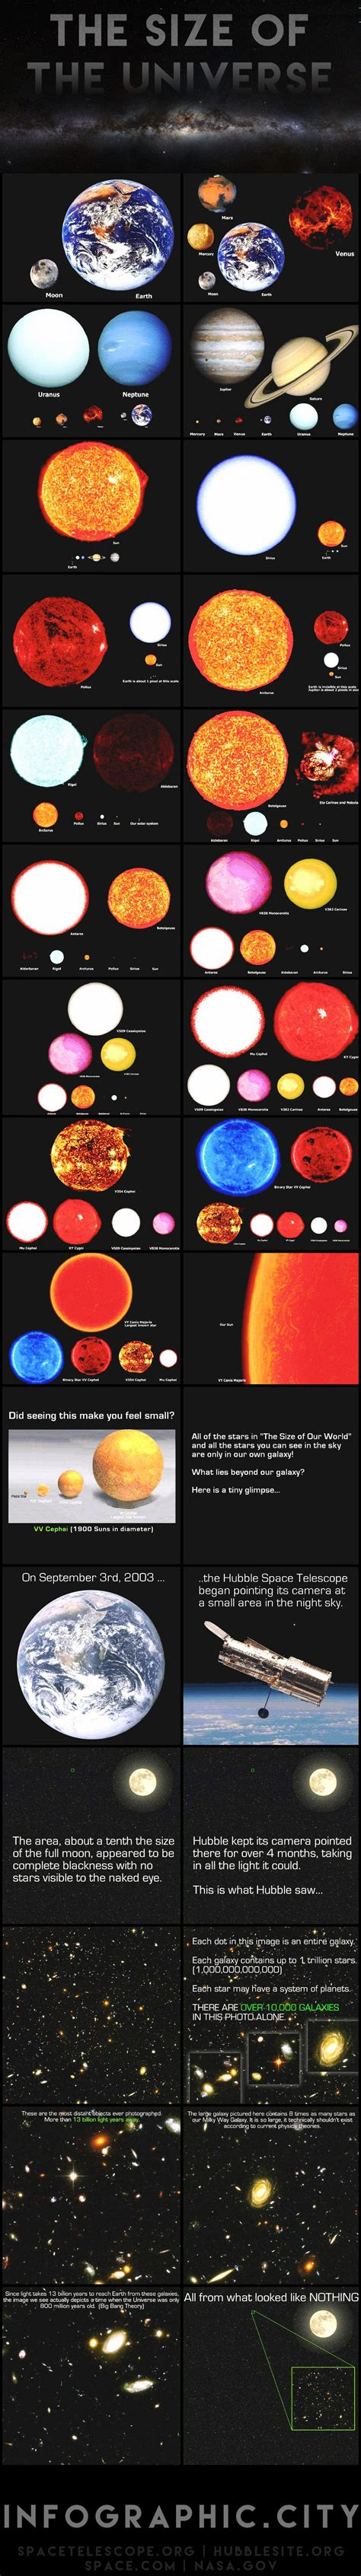 The Size Of The Universe  Infographic City